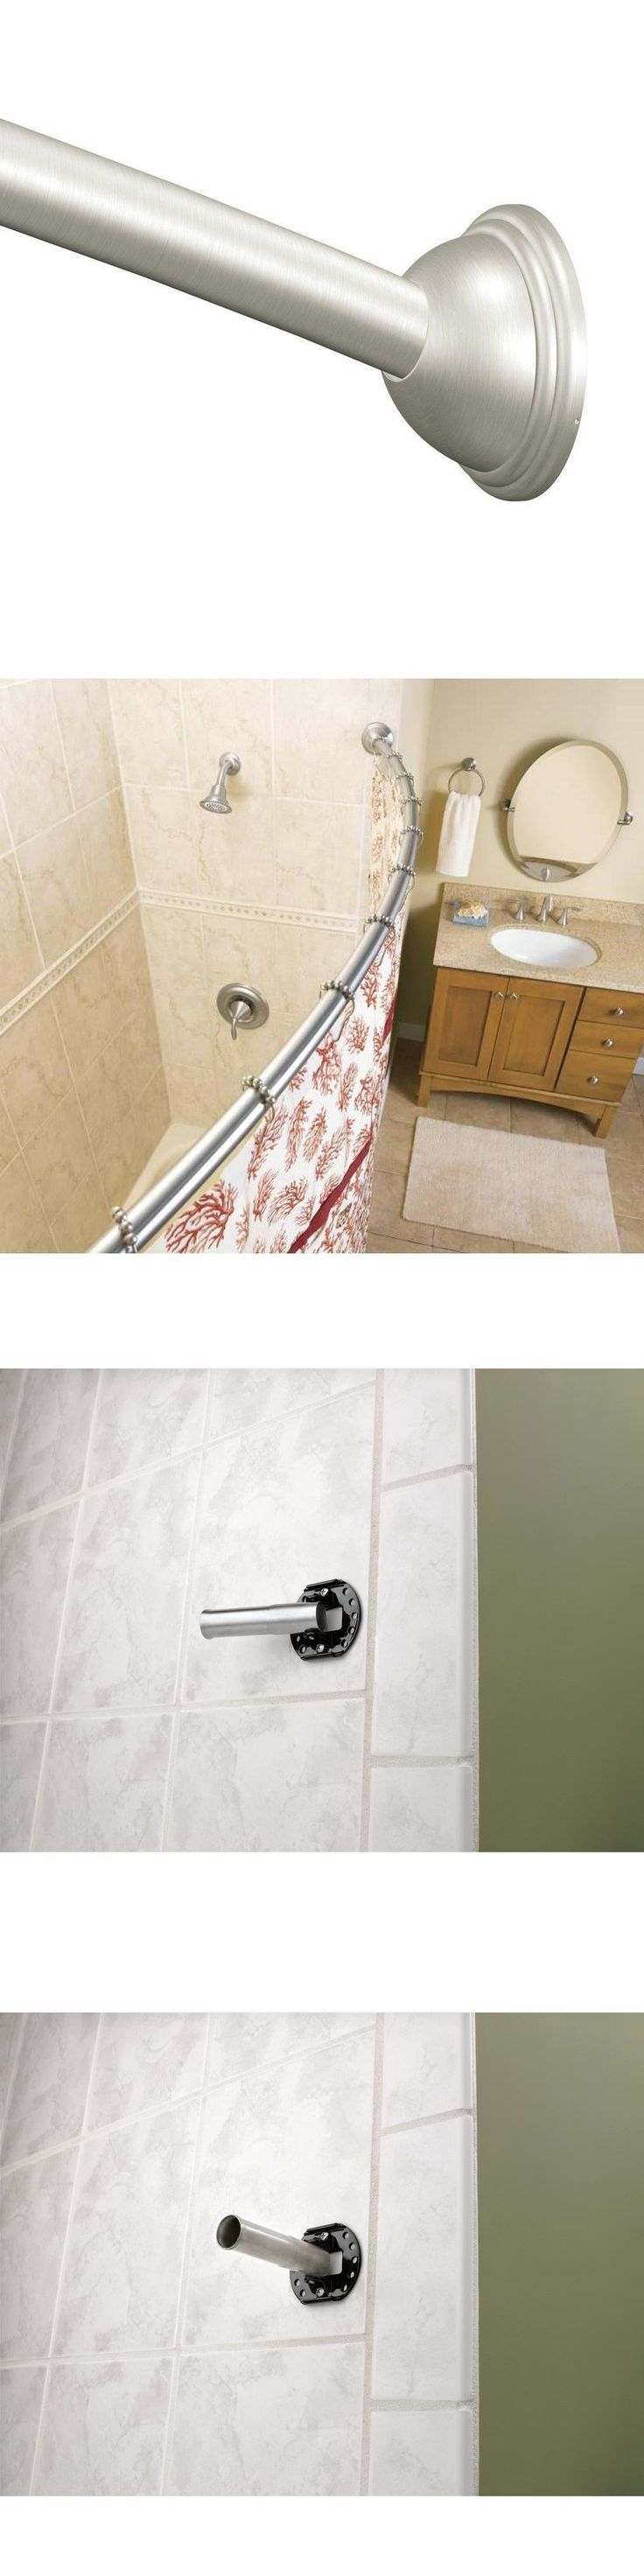 Shower Curtain Rods 168132: Moen 60 In. Curved Shower Curtain Steel Rod  Pivoting Flanges